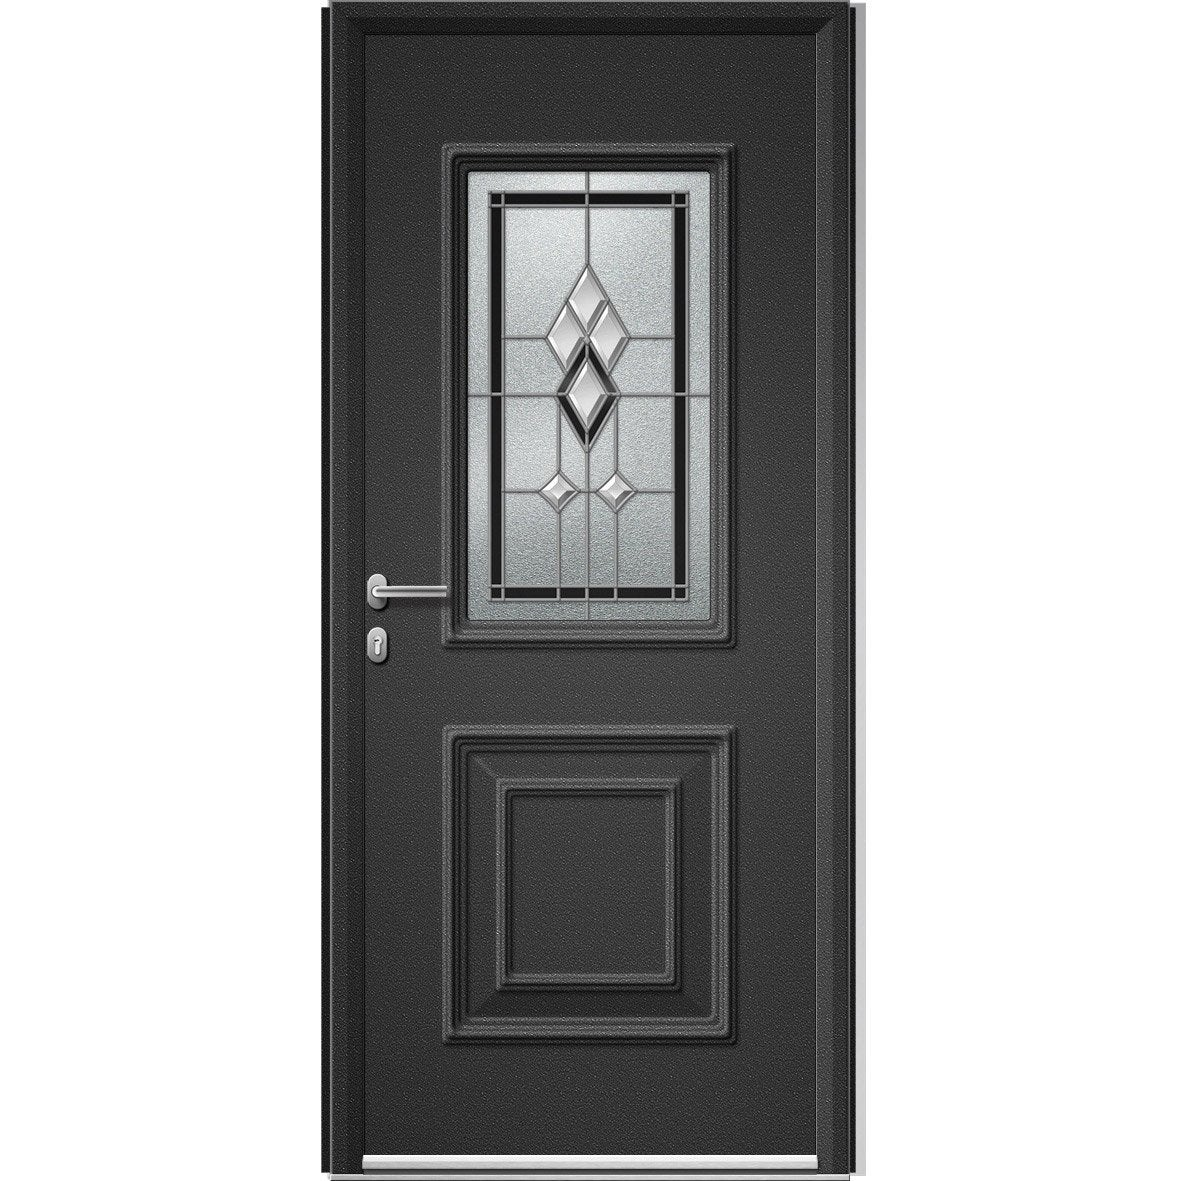 porte d 39 entr e sur mesure en aluminium utah vitrail artens leroy merlin. Black Bedroom Furniture Sets. Home Design Ideas